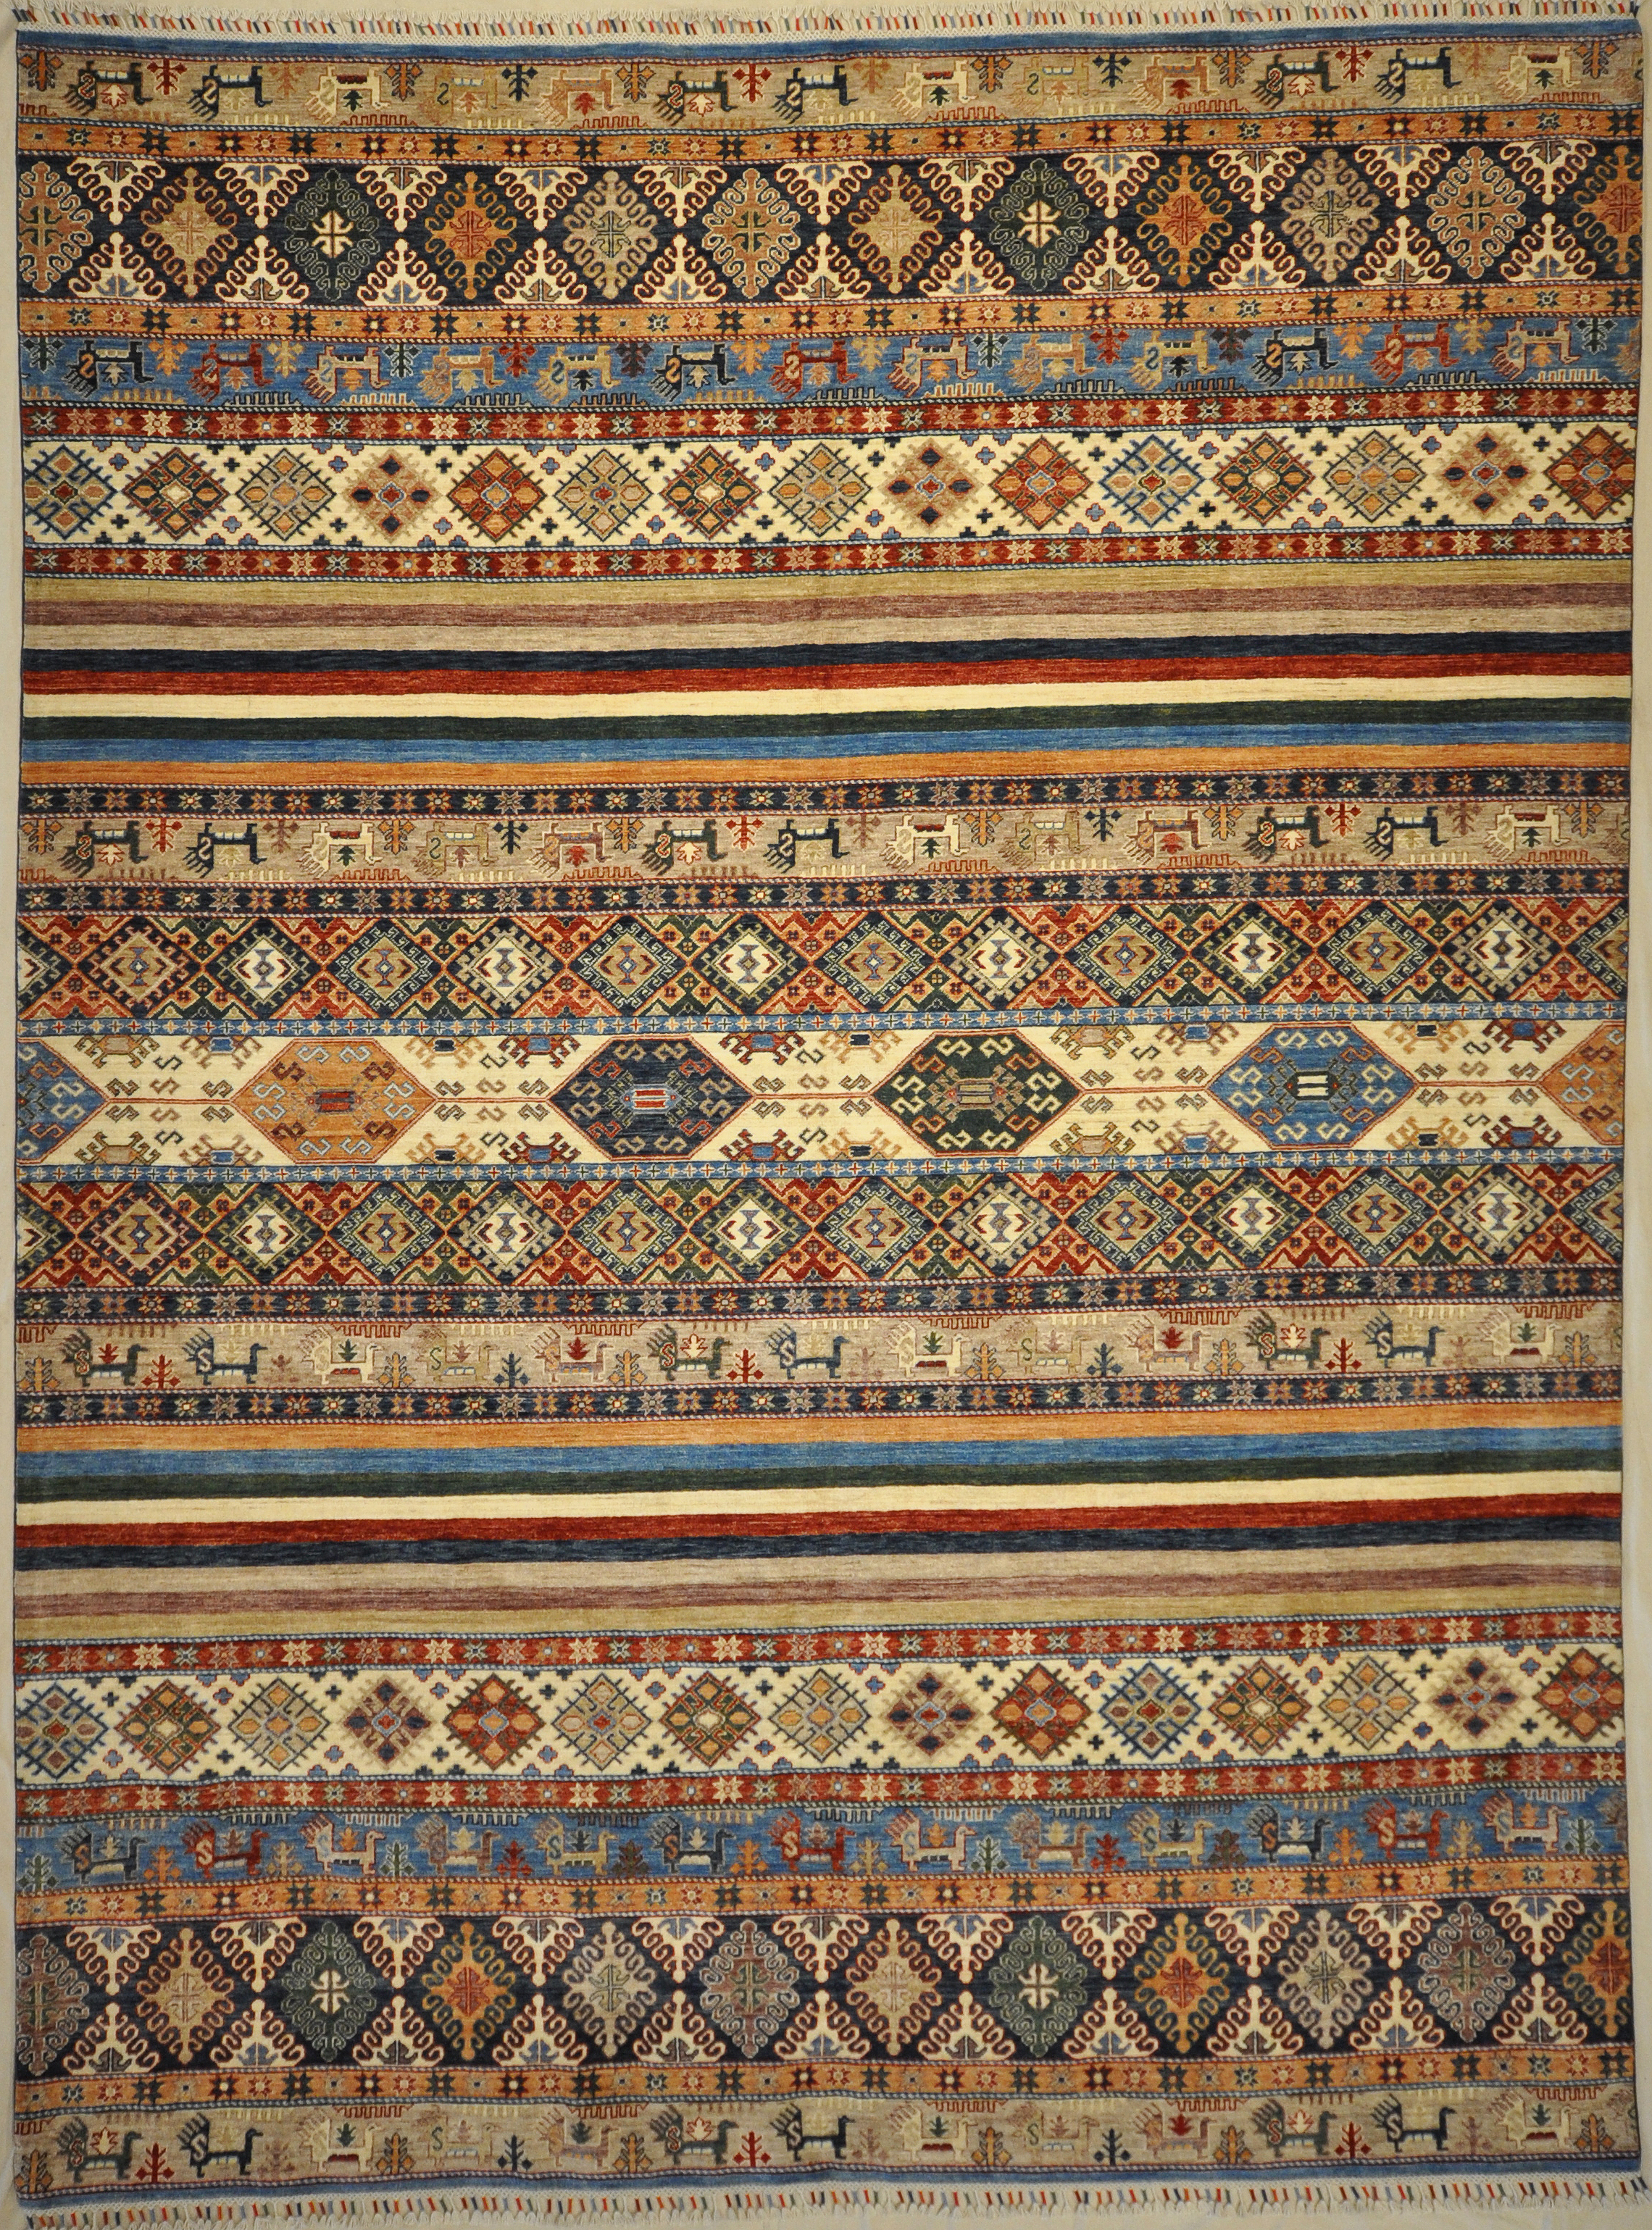 Ziegler & Co Jaf Kurd rugs and more oriental carpet 33150-